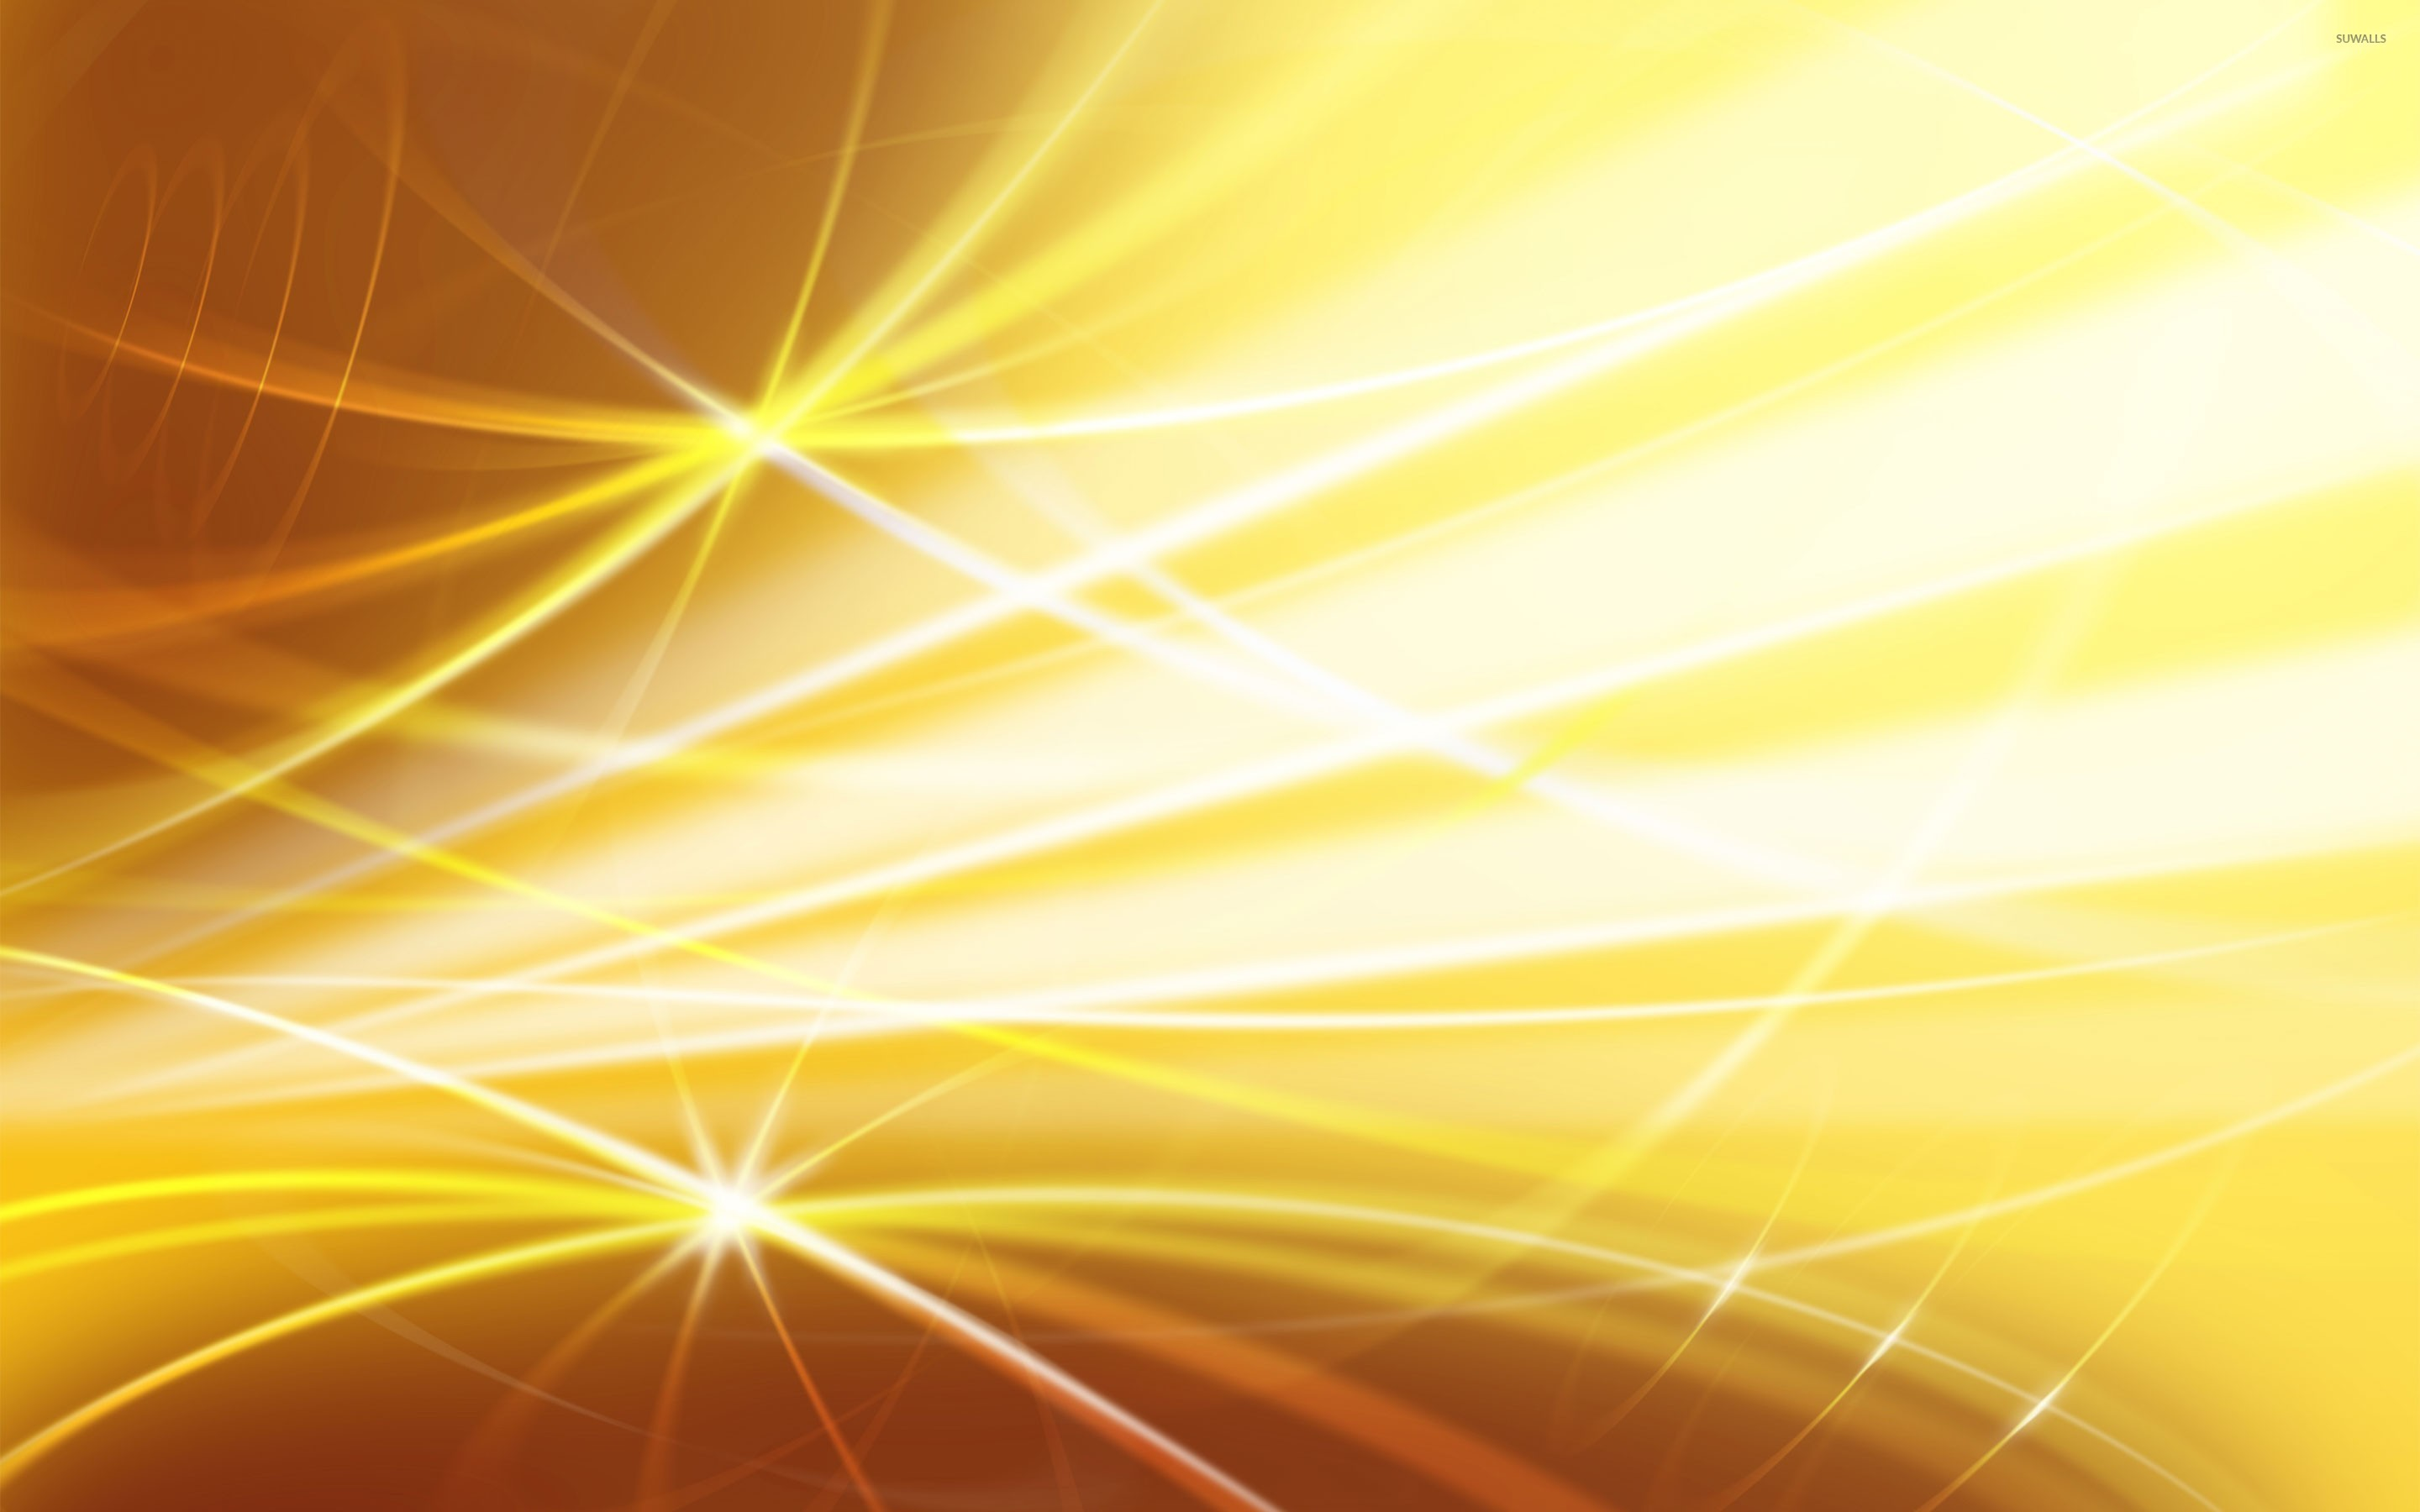 golden sparkles wallpaper abstract wallpapers 24576